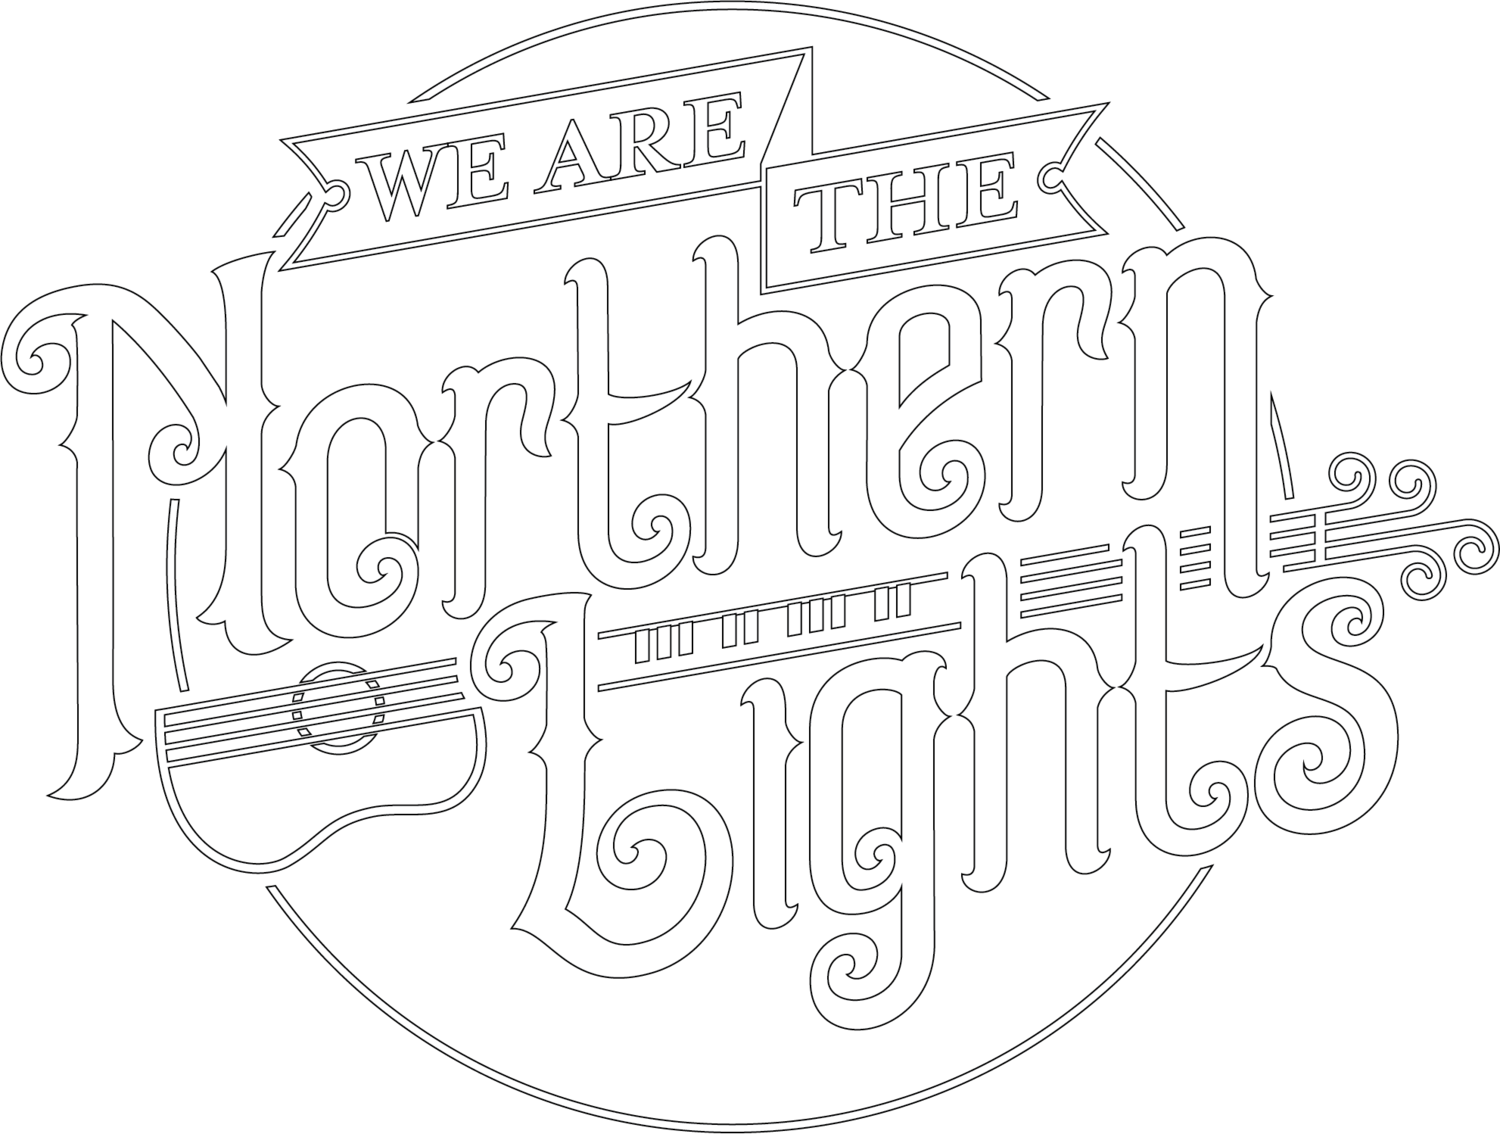 We Are The Northern Lights